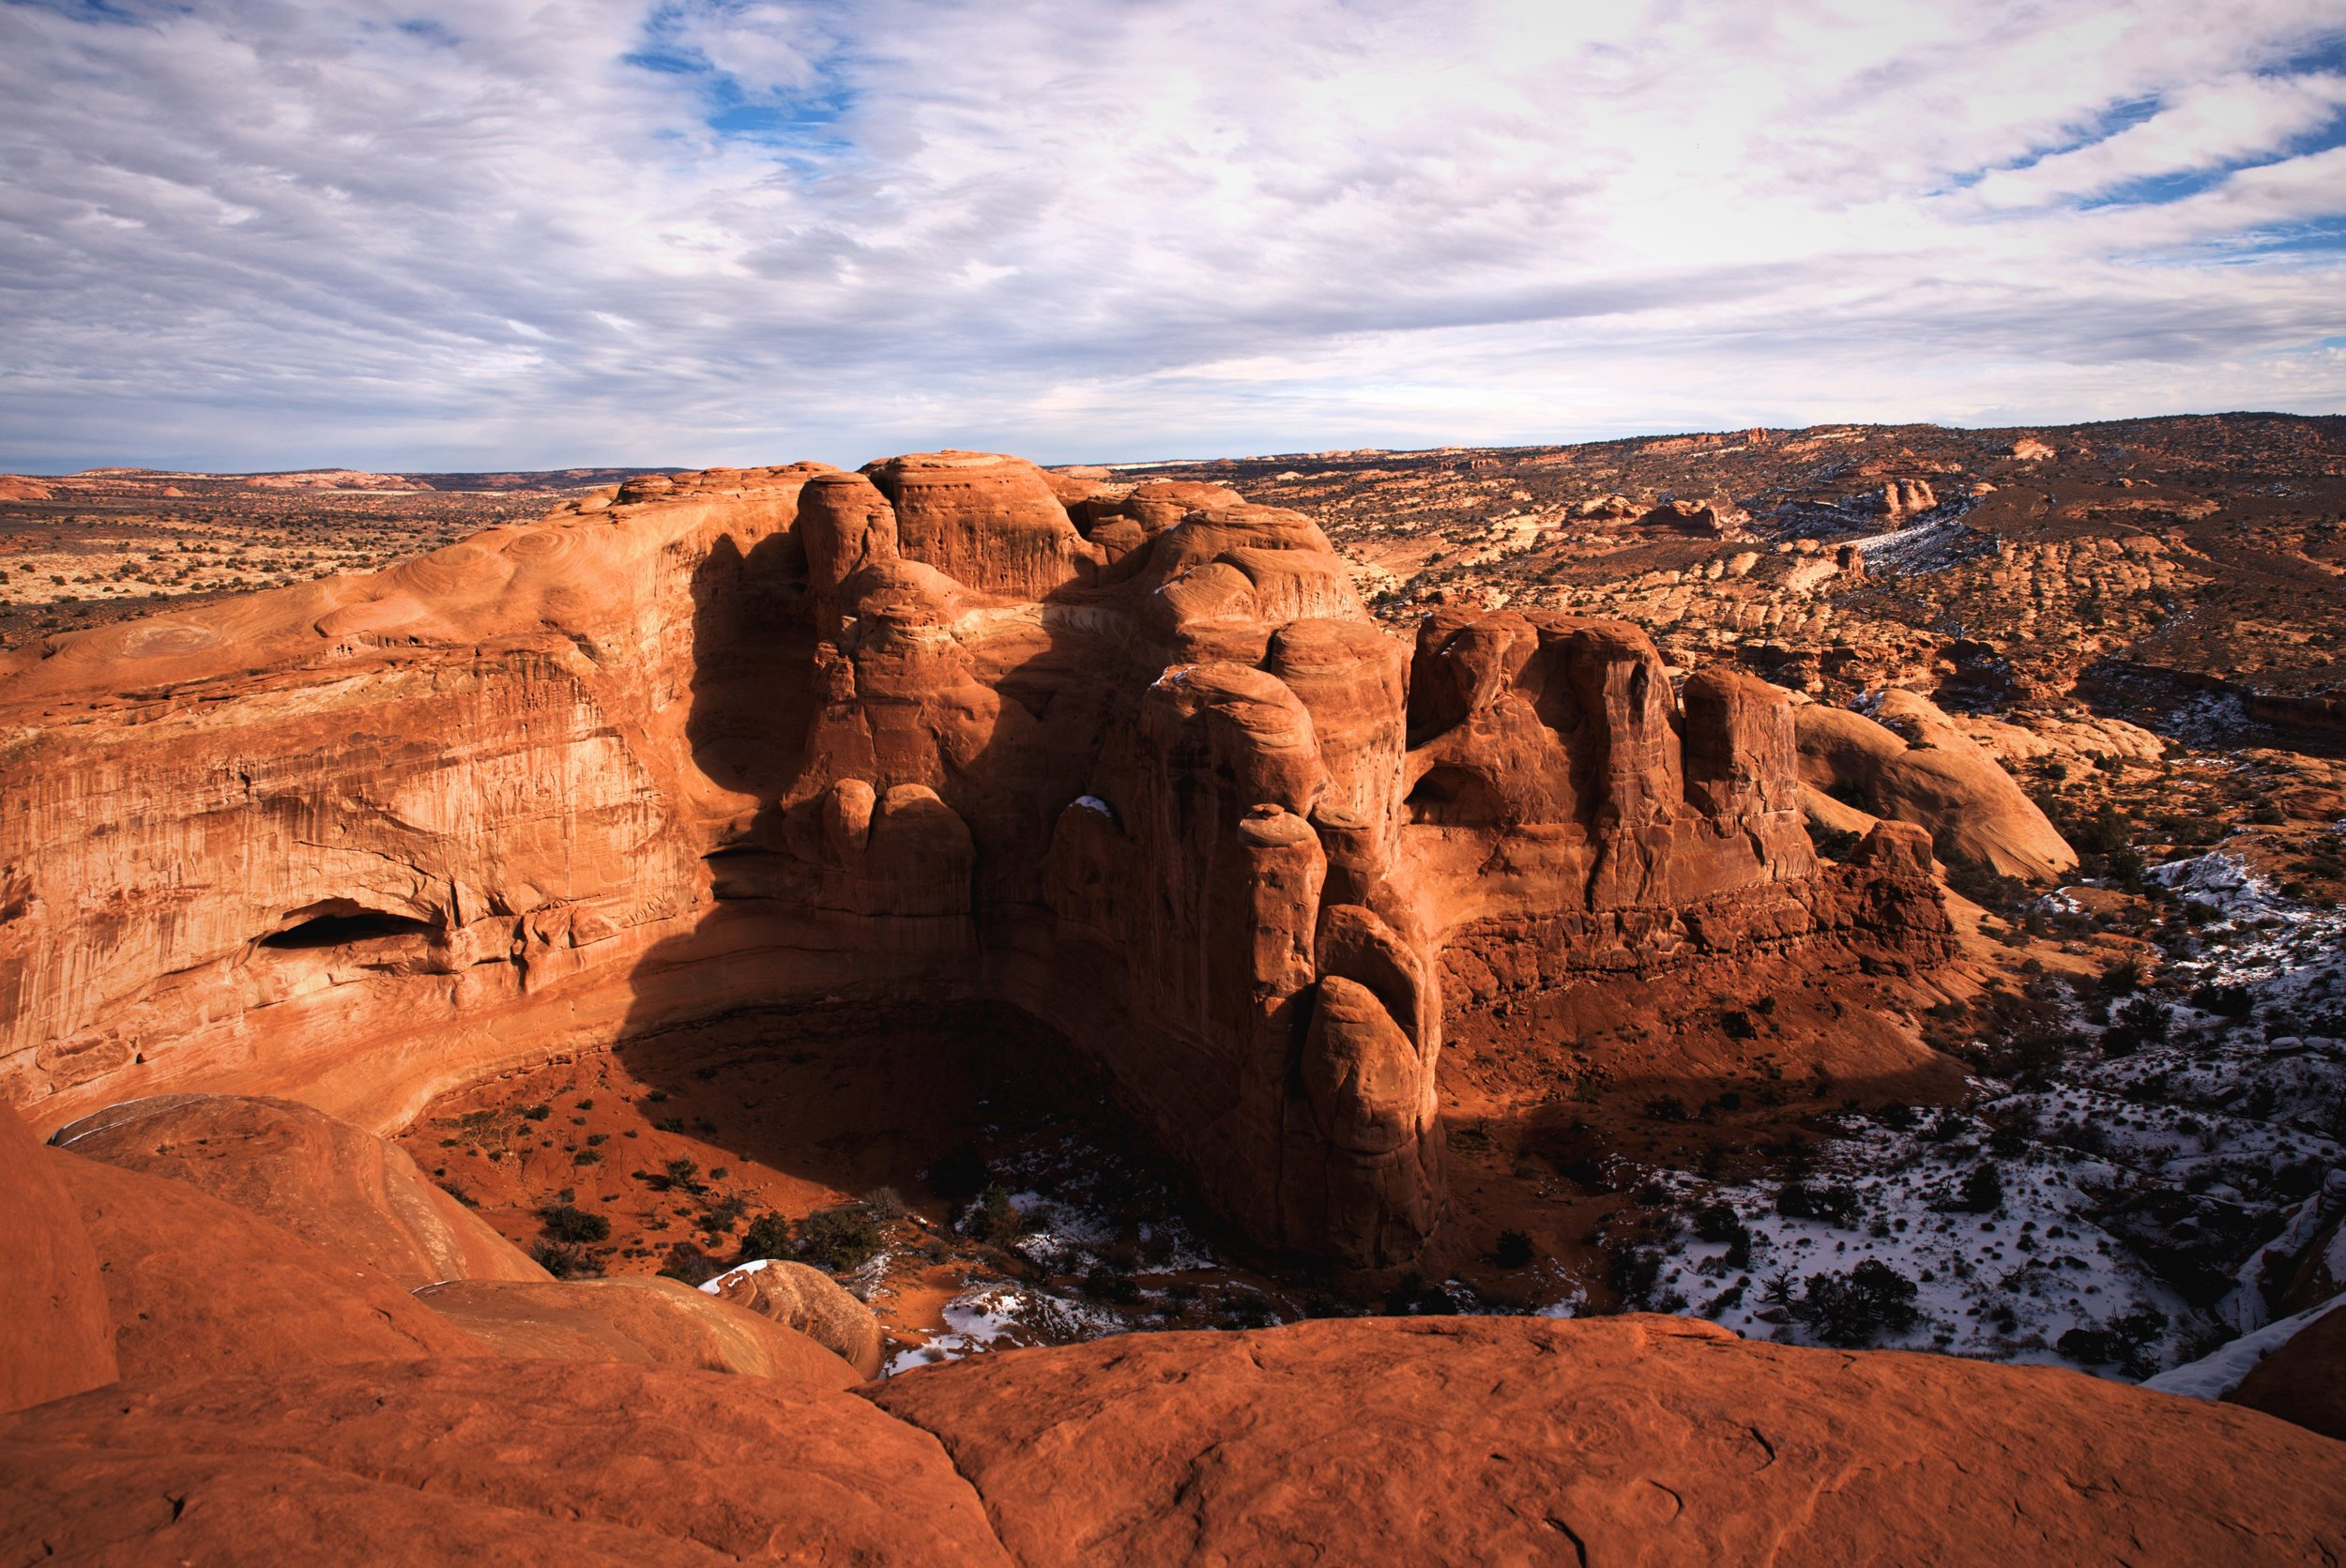 If you look into the sandstone formations around Delicate Arch, you may spot the beginnings of some future arches.